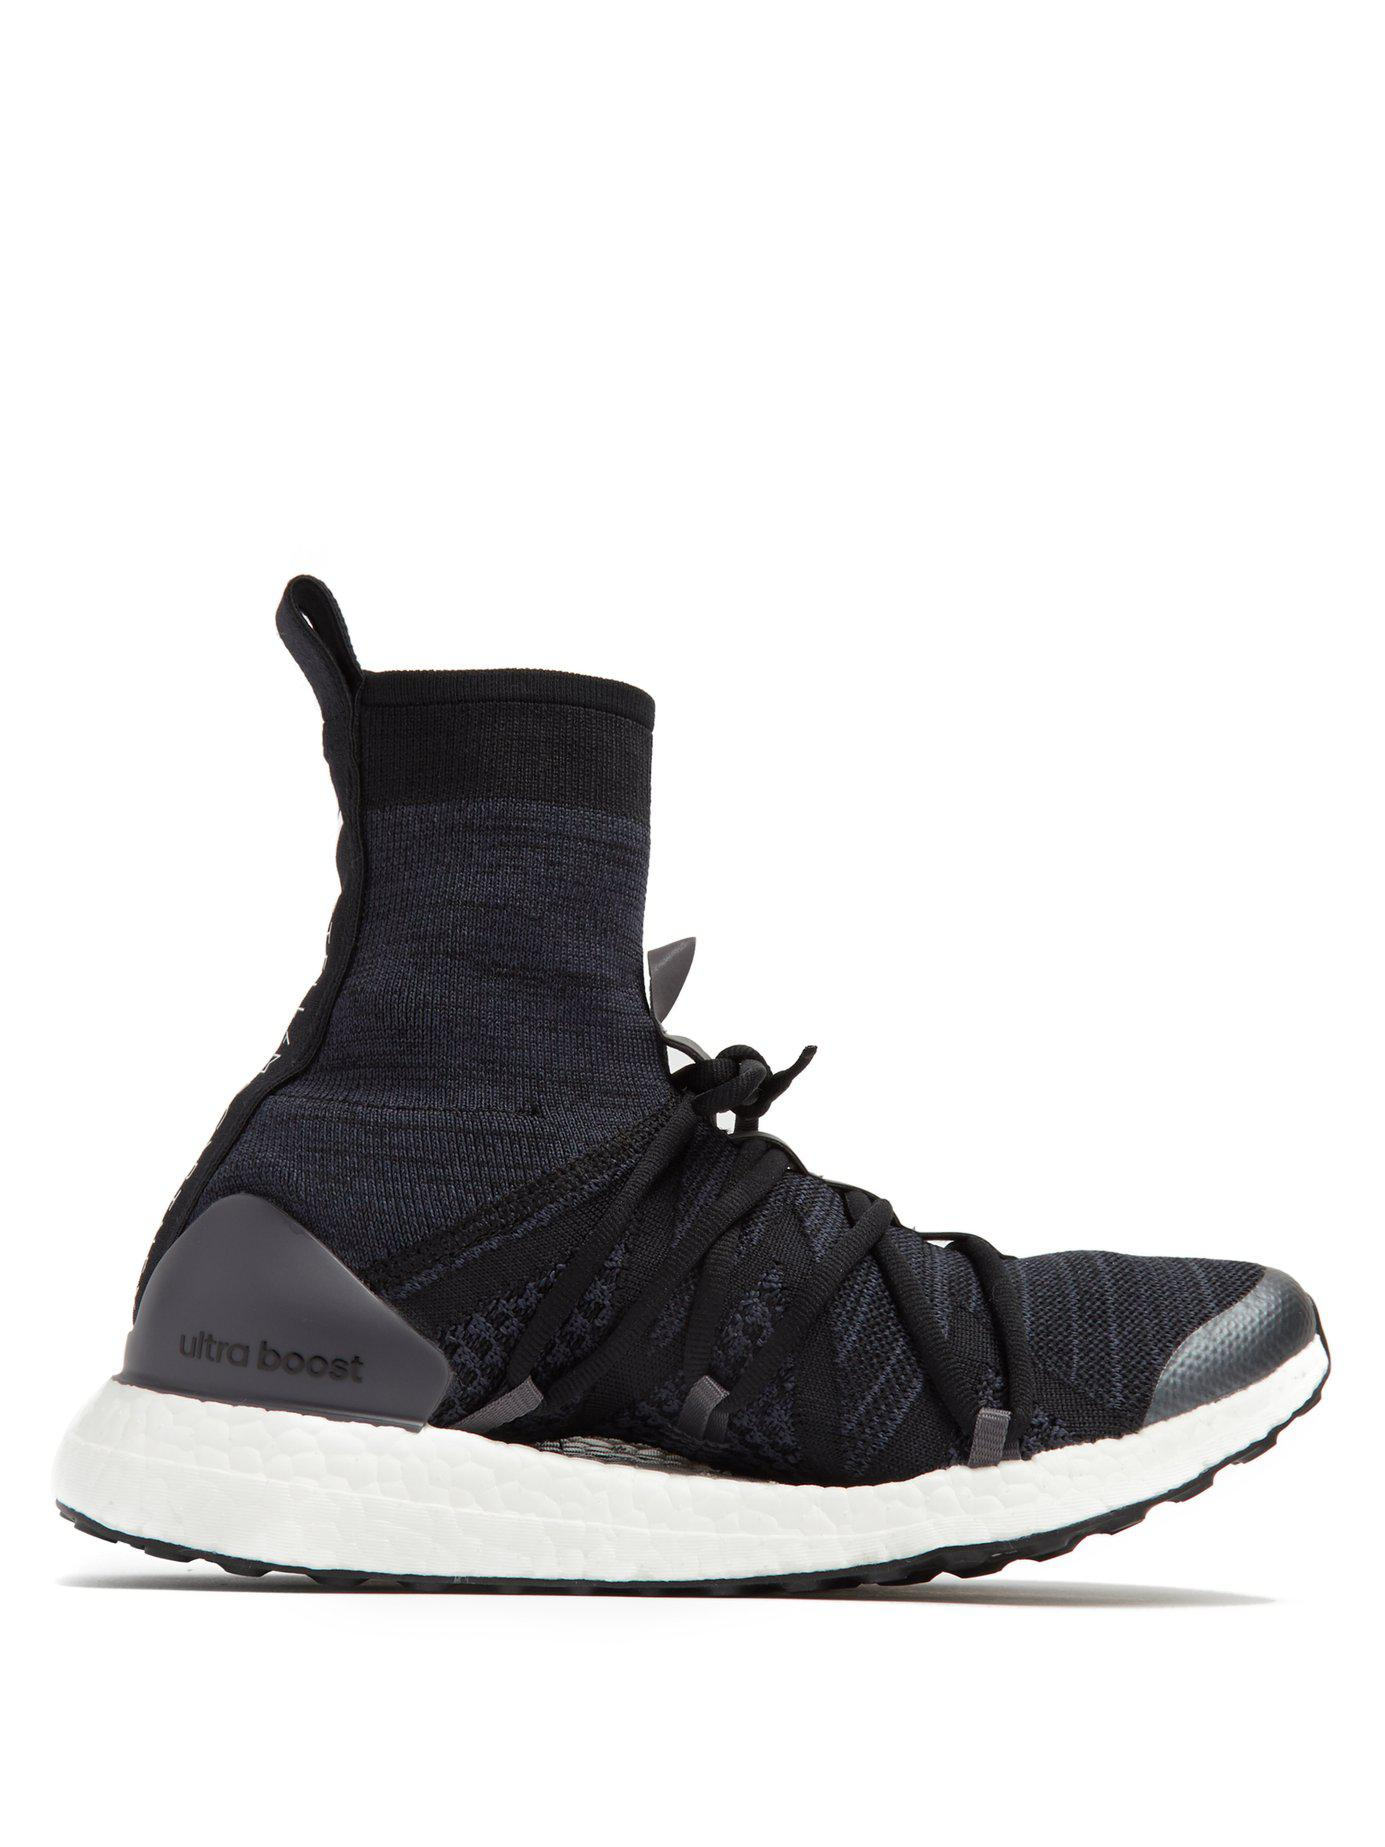 meet e5919 cc7b4 adidas-by-stella-mccartney-black-Ultra-Boost-X-High-Top-Sock-Trainers.jpeg